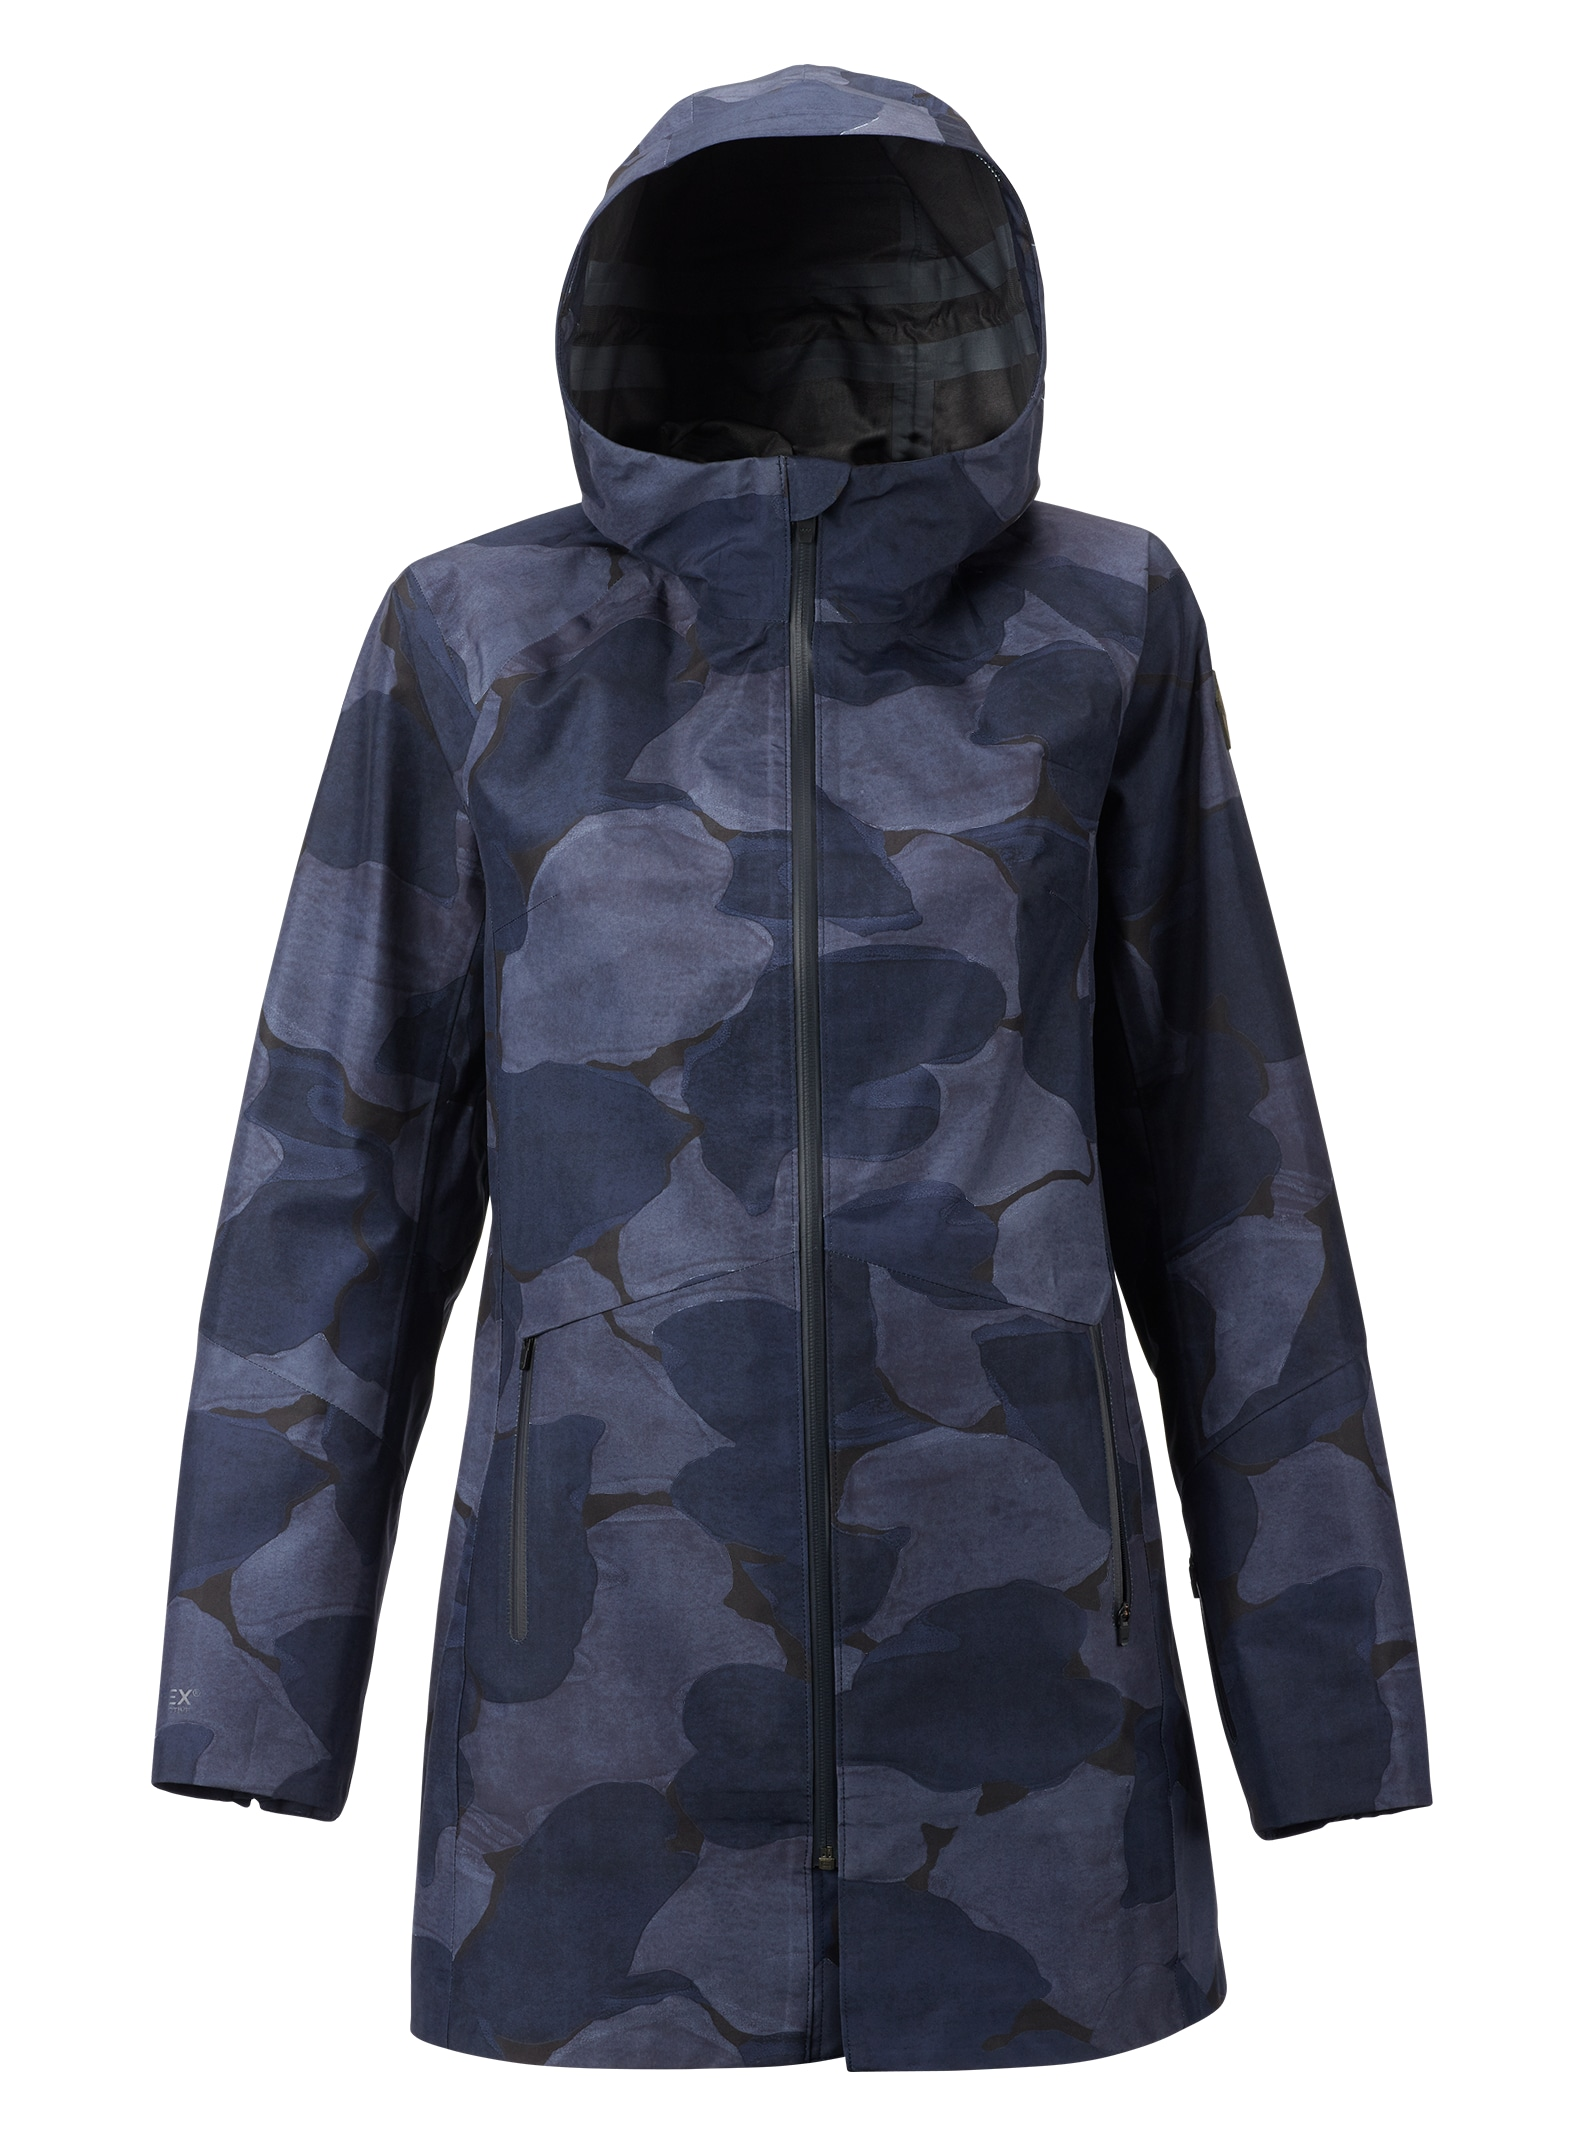 Burton GORE-TEX® 3L Cady Rain Parka shown in Mood Indigo Pond Camo